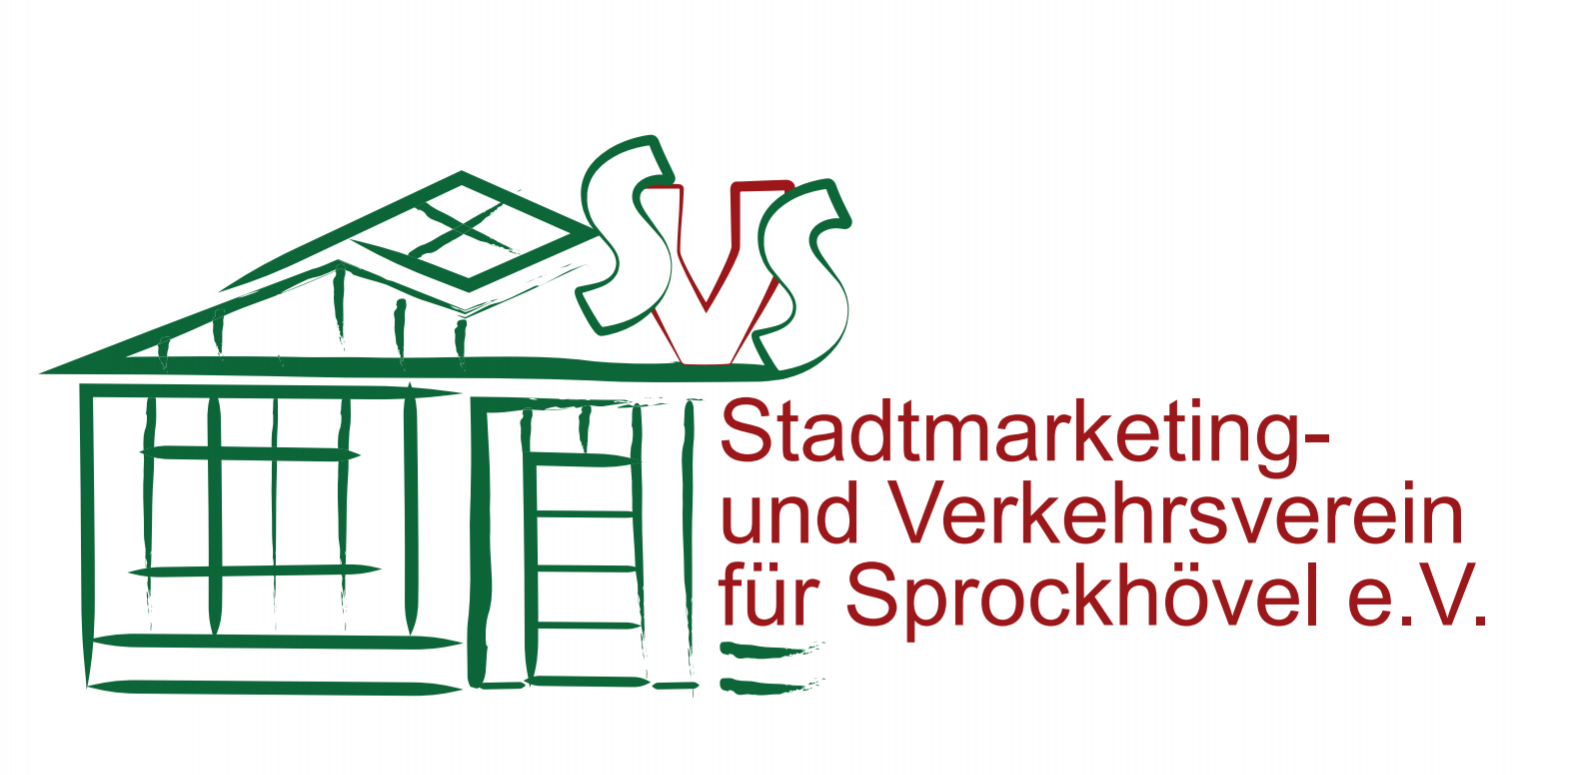 Stadtmarketin Sprockhövel